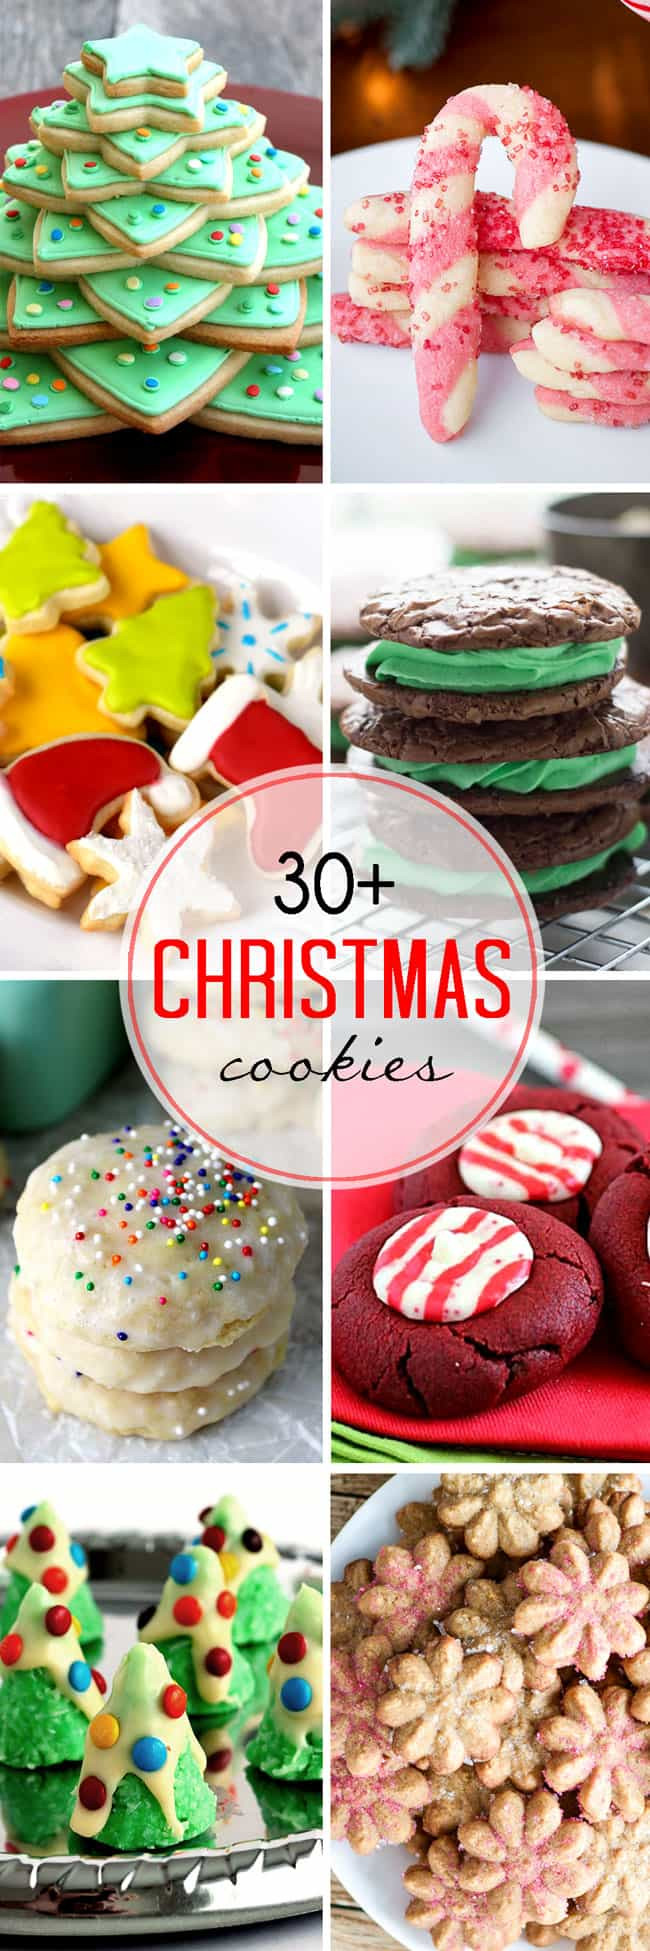 Christmas Baking Gifts  30 Christmas Cookies for your holiday baking